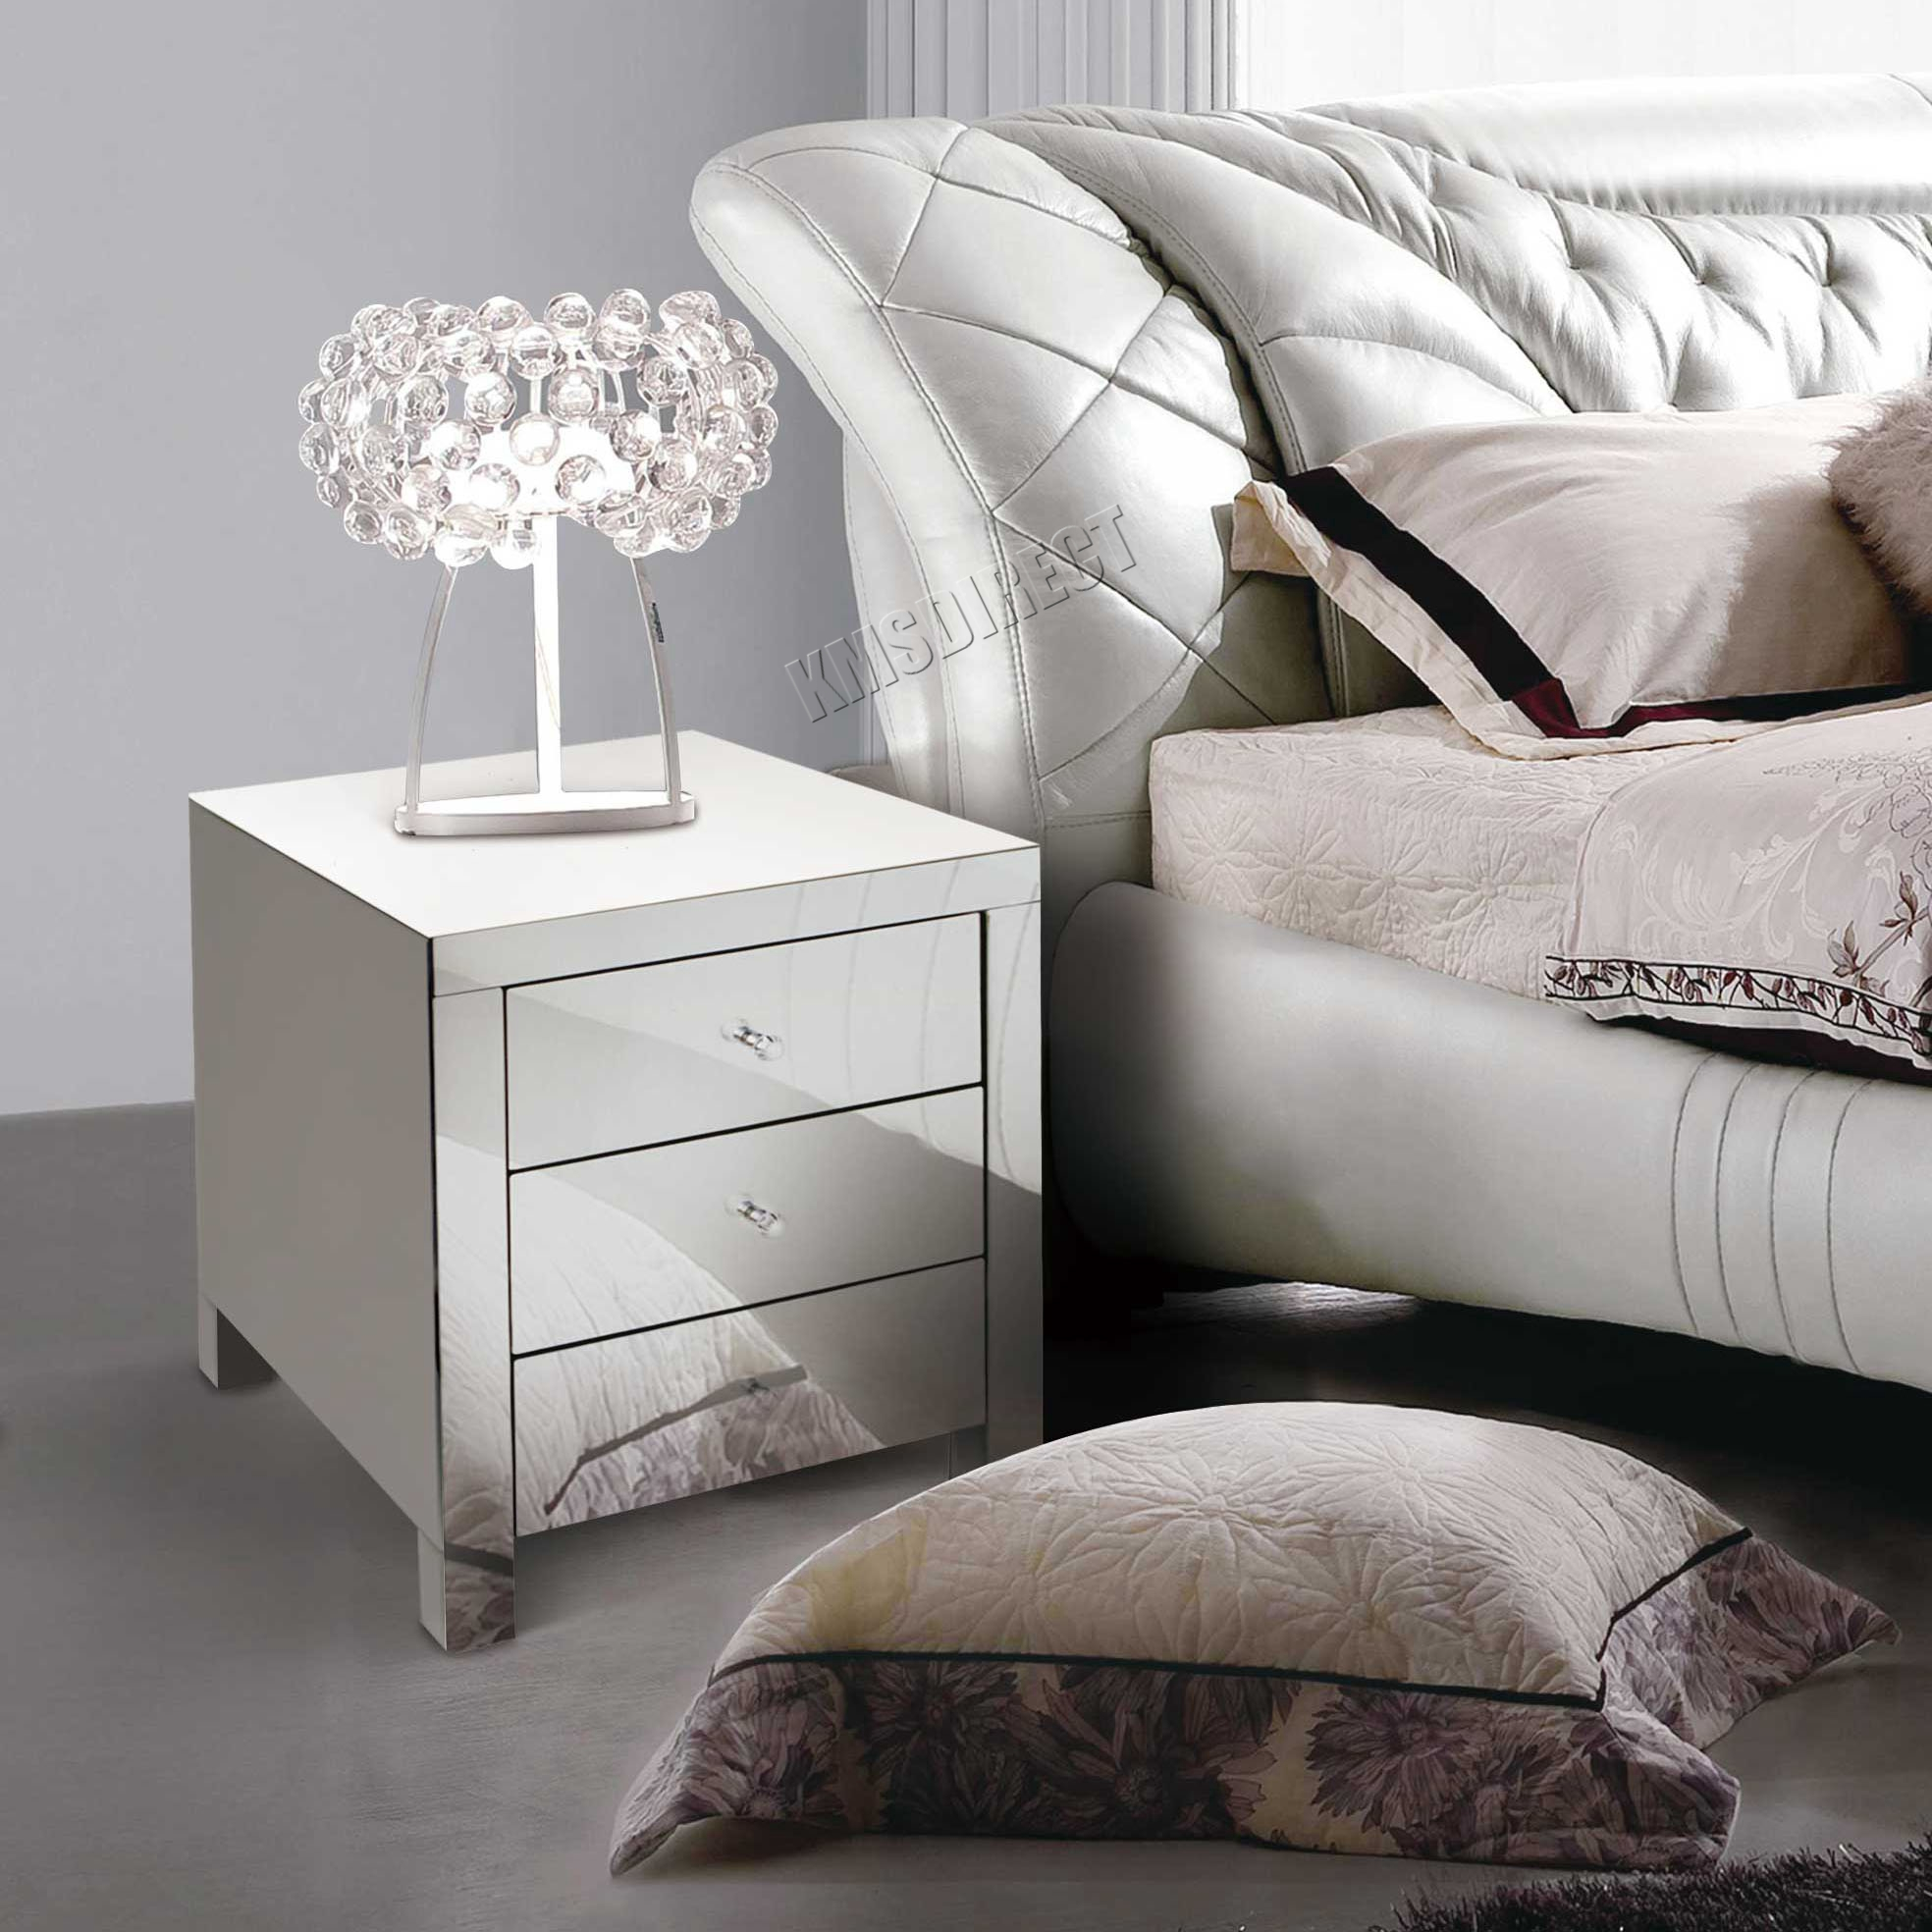 FoxHunter Mirrored Furniture Glass Bedside Cabinet Table With Drawer Bedroom New  eBay